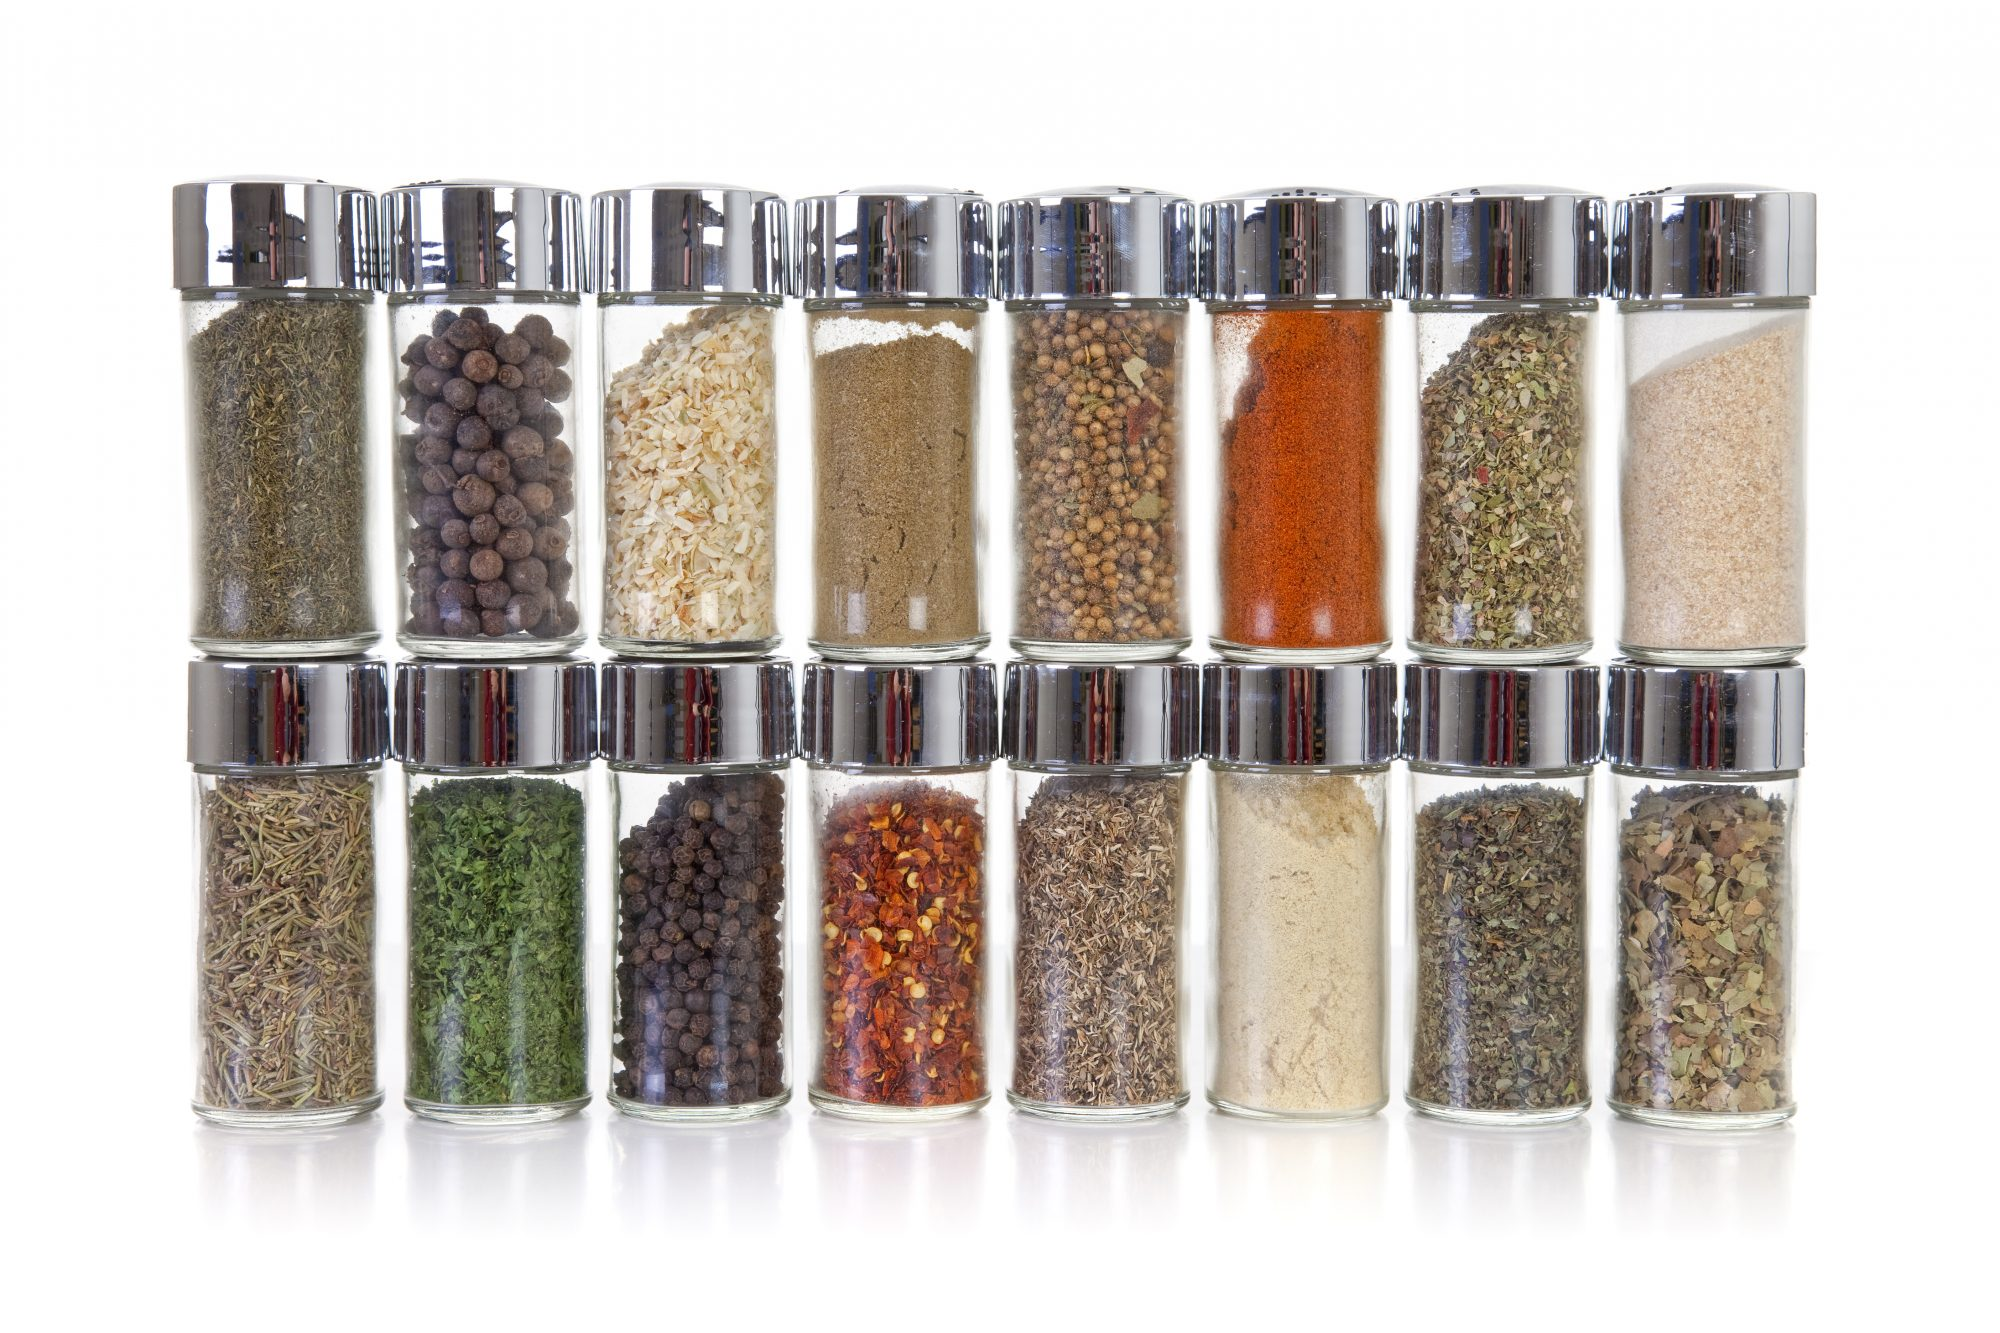 051920_Spices